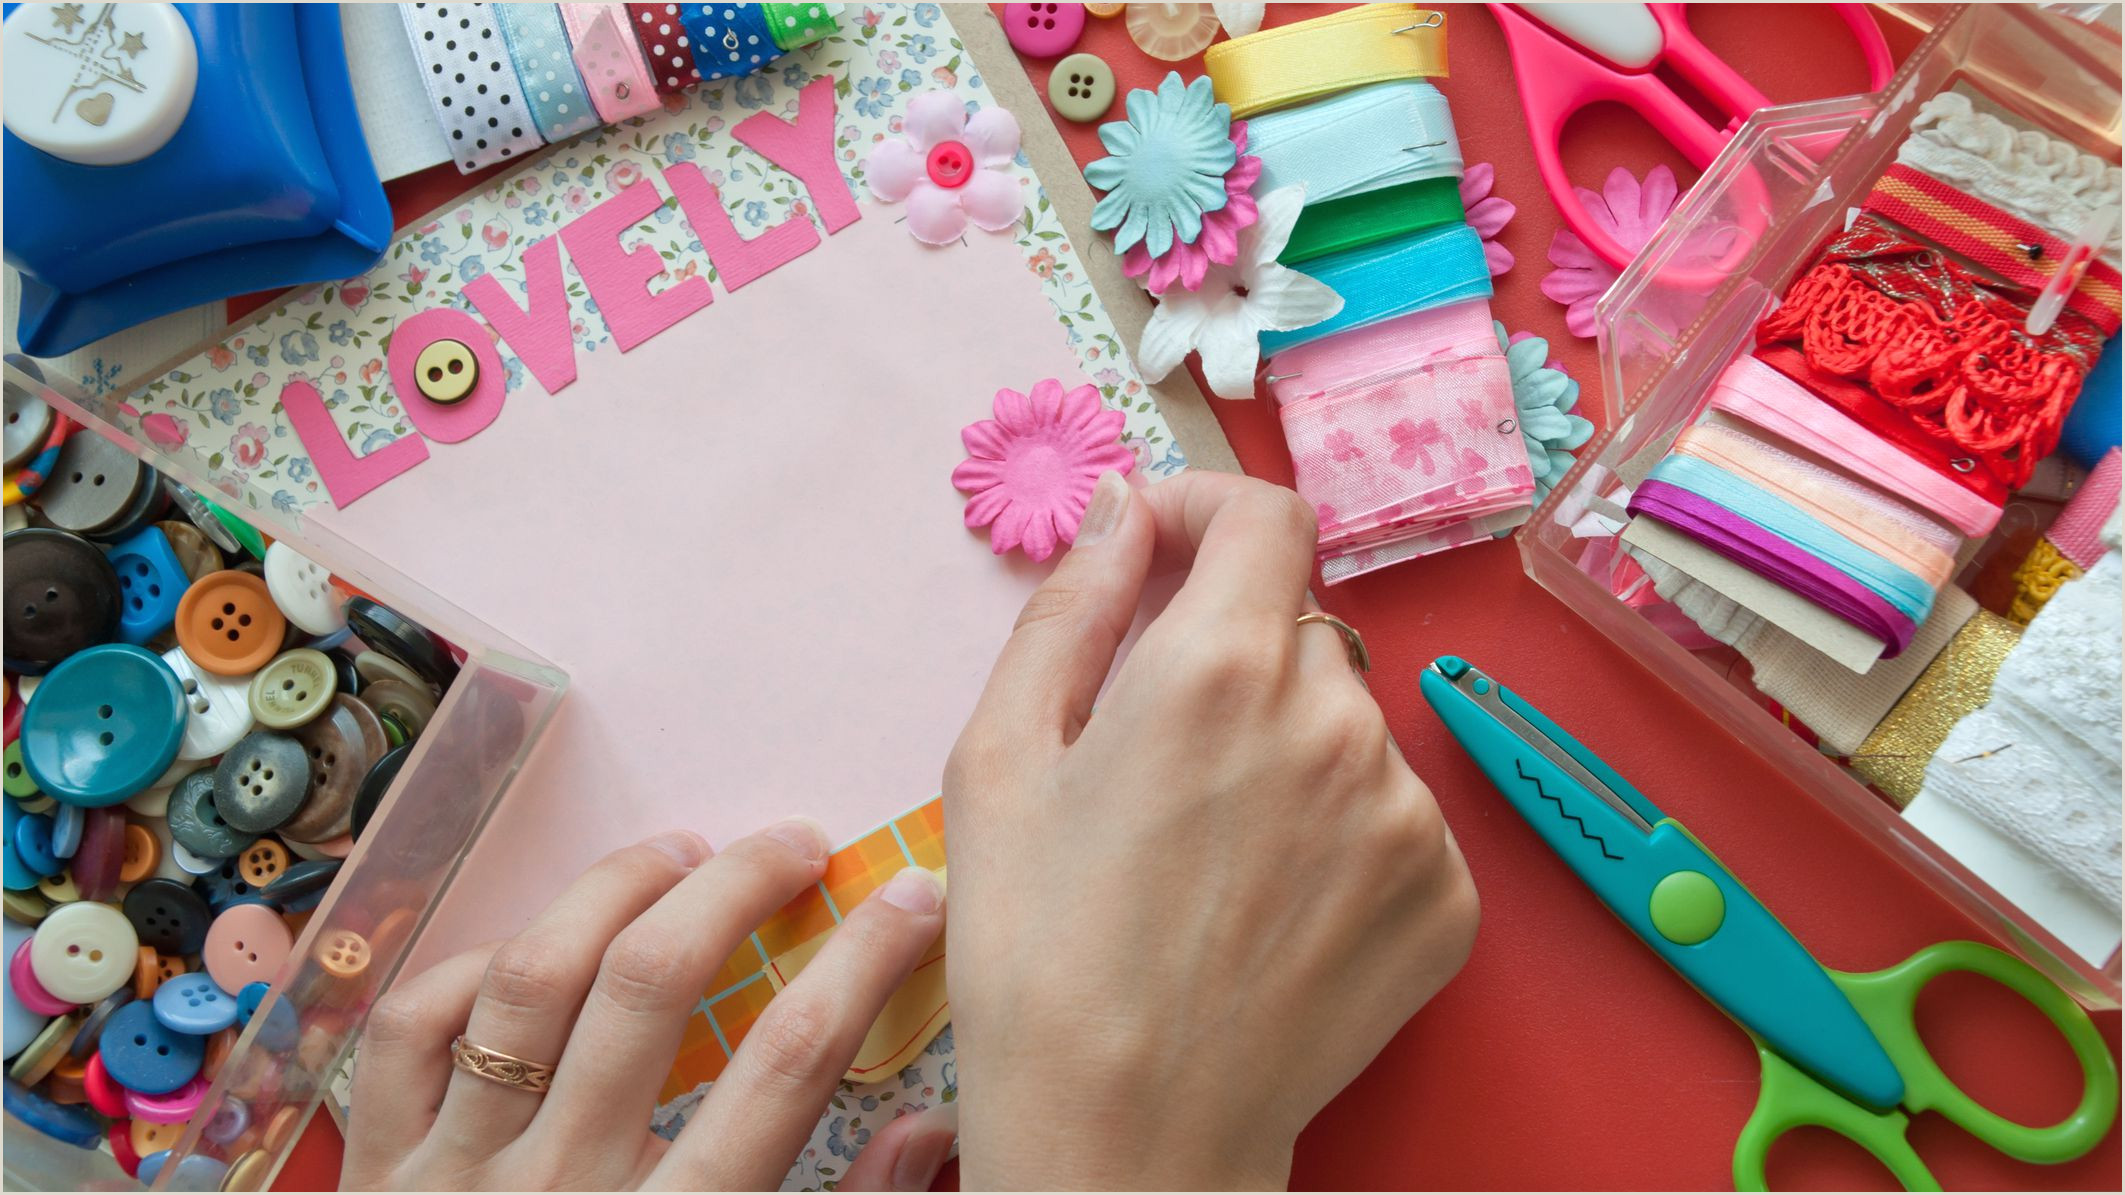 Business Card Ideas For Crafters A List Of Creative Collage Materials